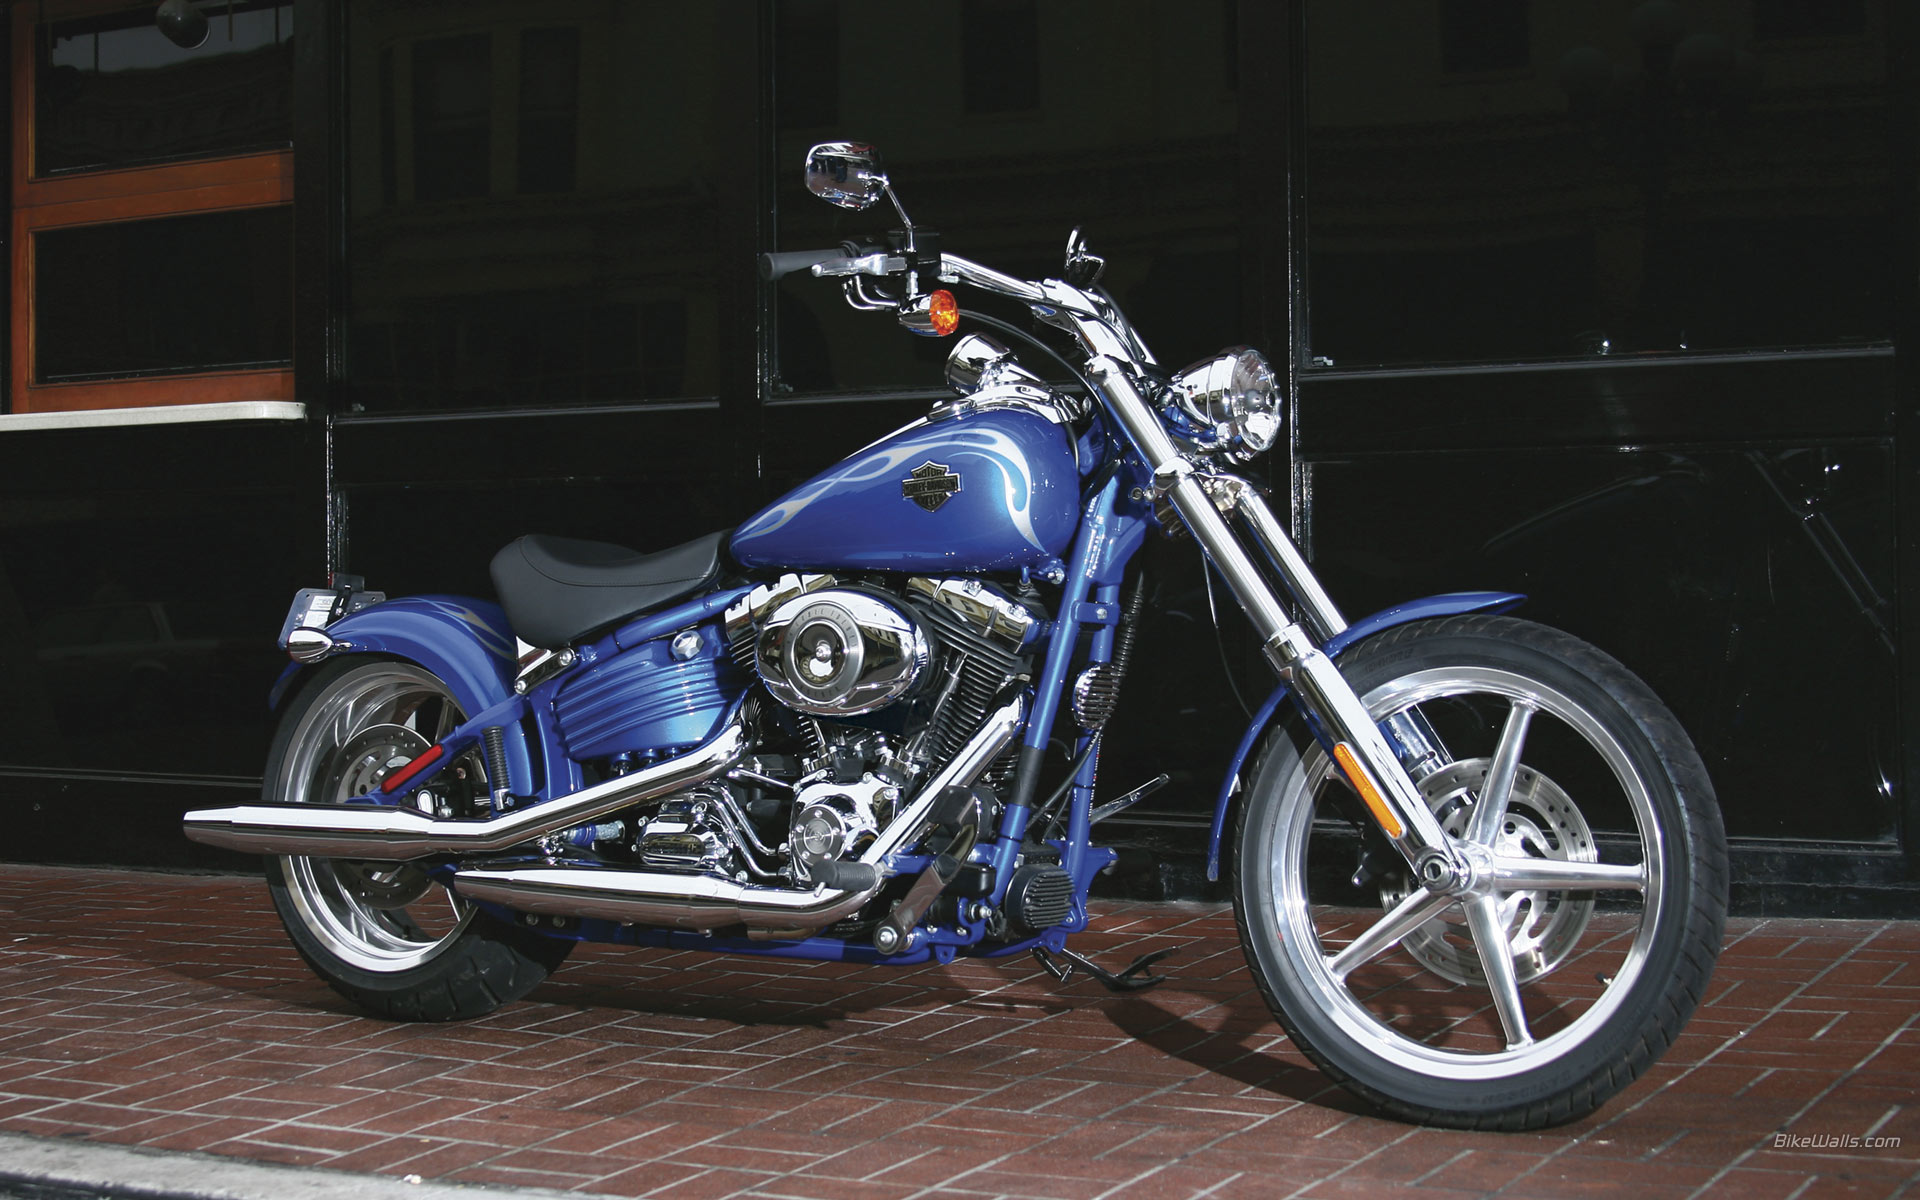 Bike Wale Wallpapers Harley Davidson Bikes 2010 Wallpapers